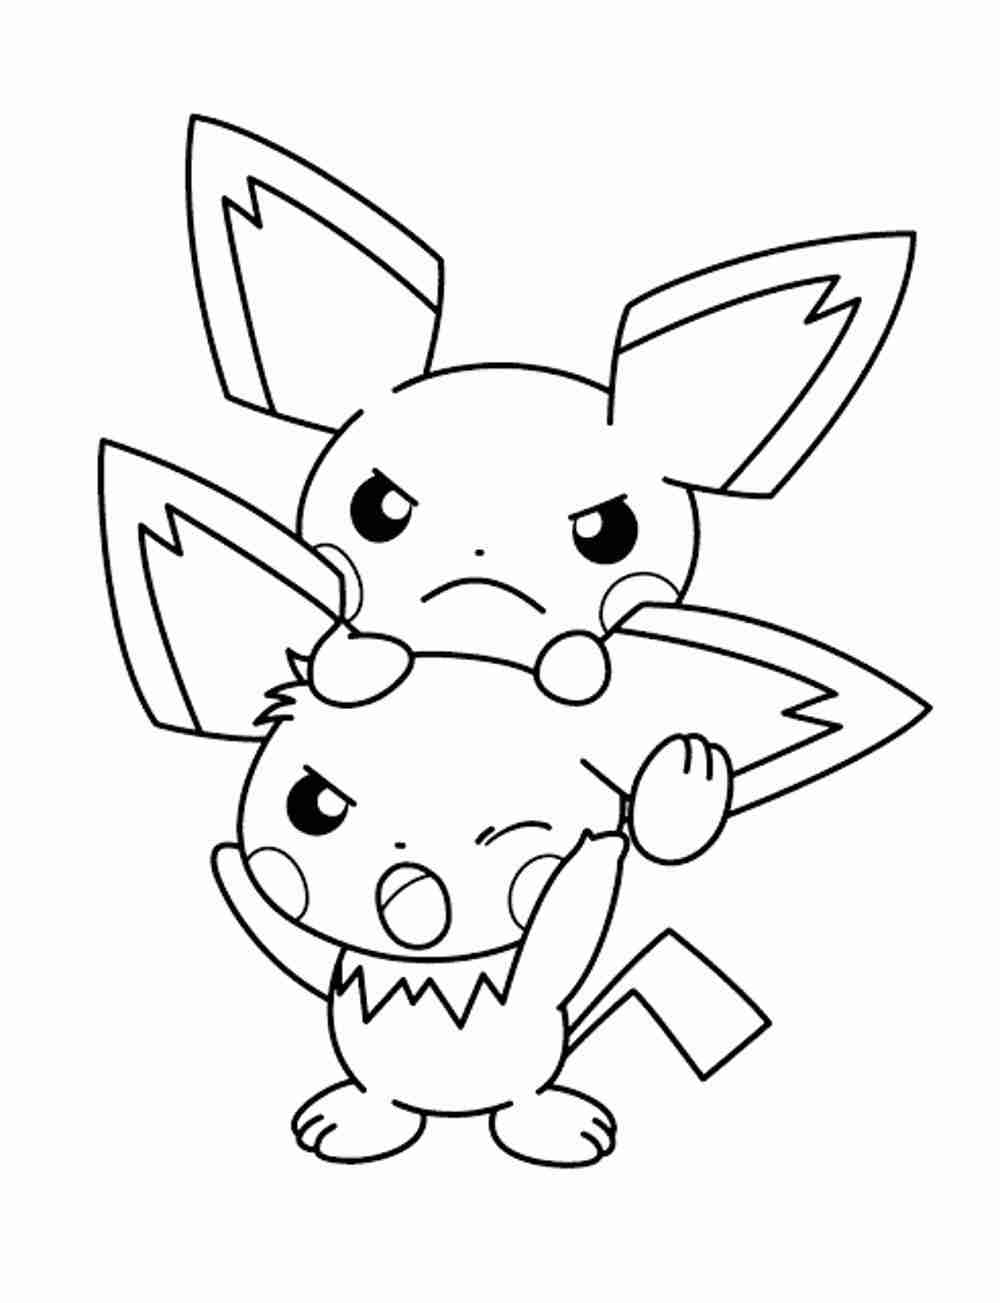 1000x1303 Pokemon Coloring Pages Eevee Bestappsforkids Com Endearing